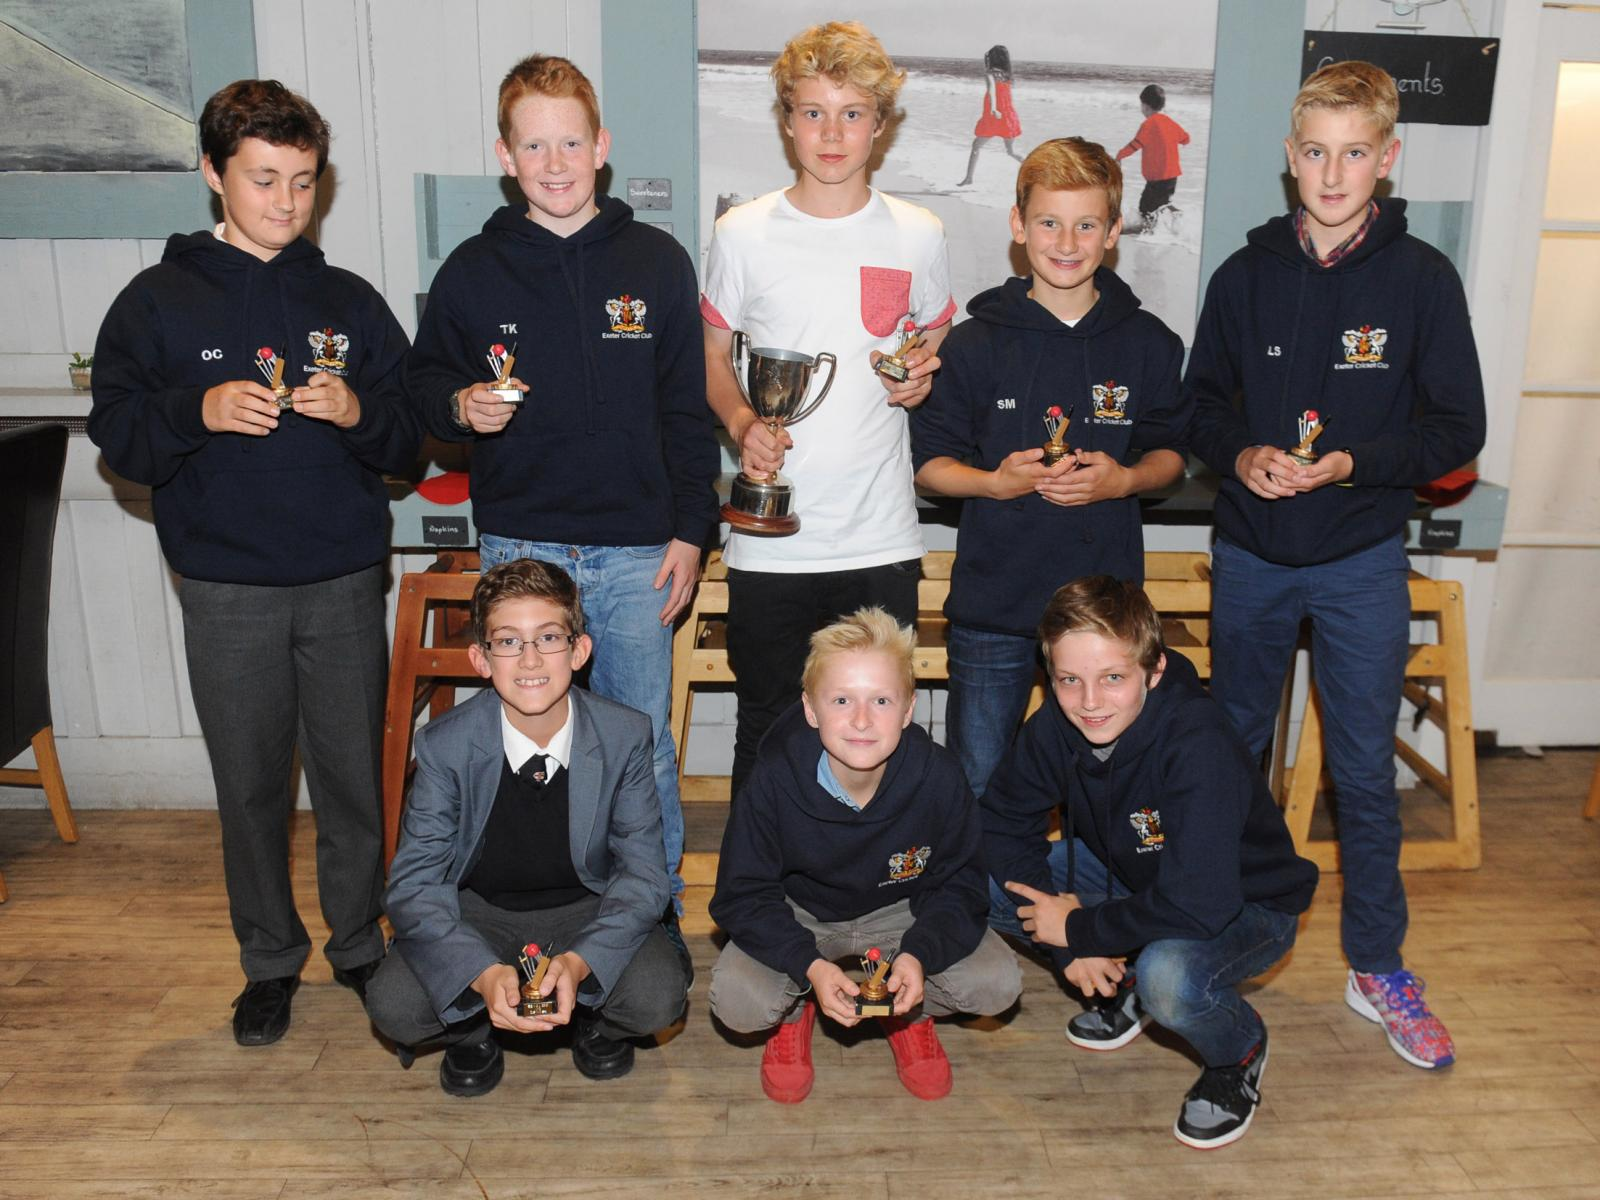 Exeter U13s proudly displaying the EDYL U13 divisional trophy